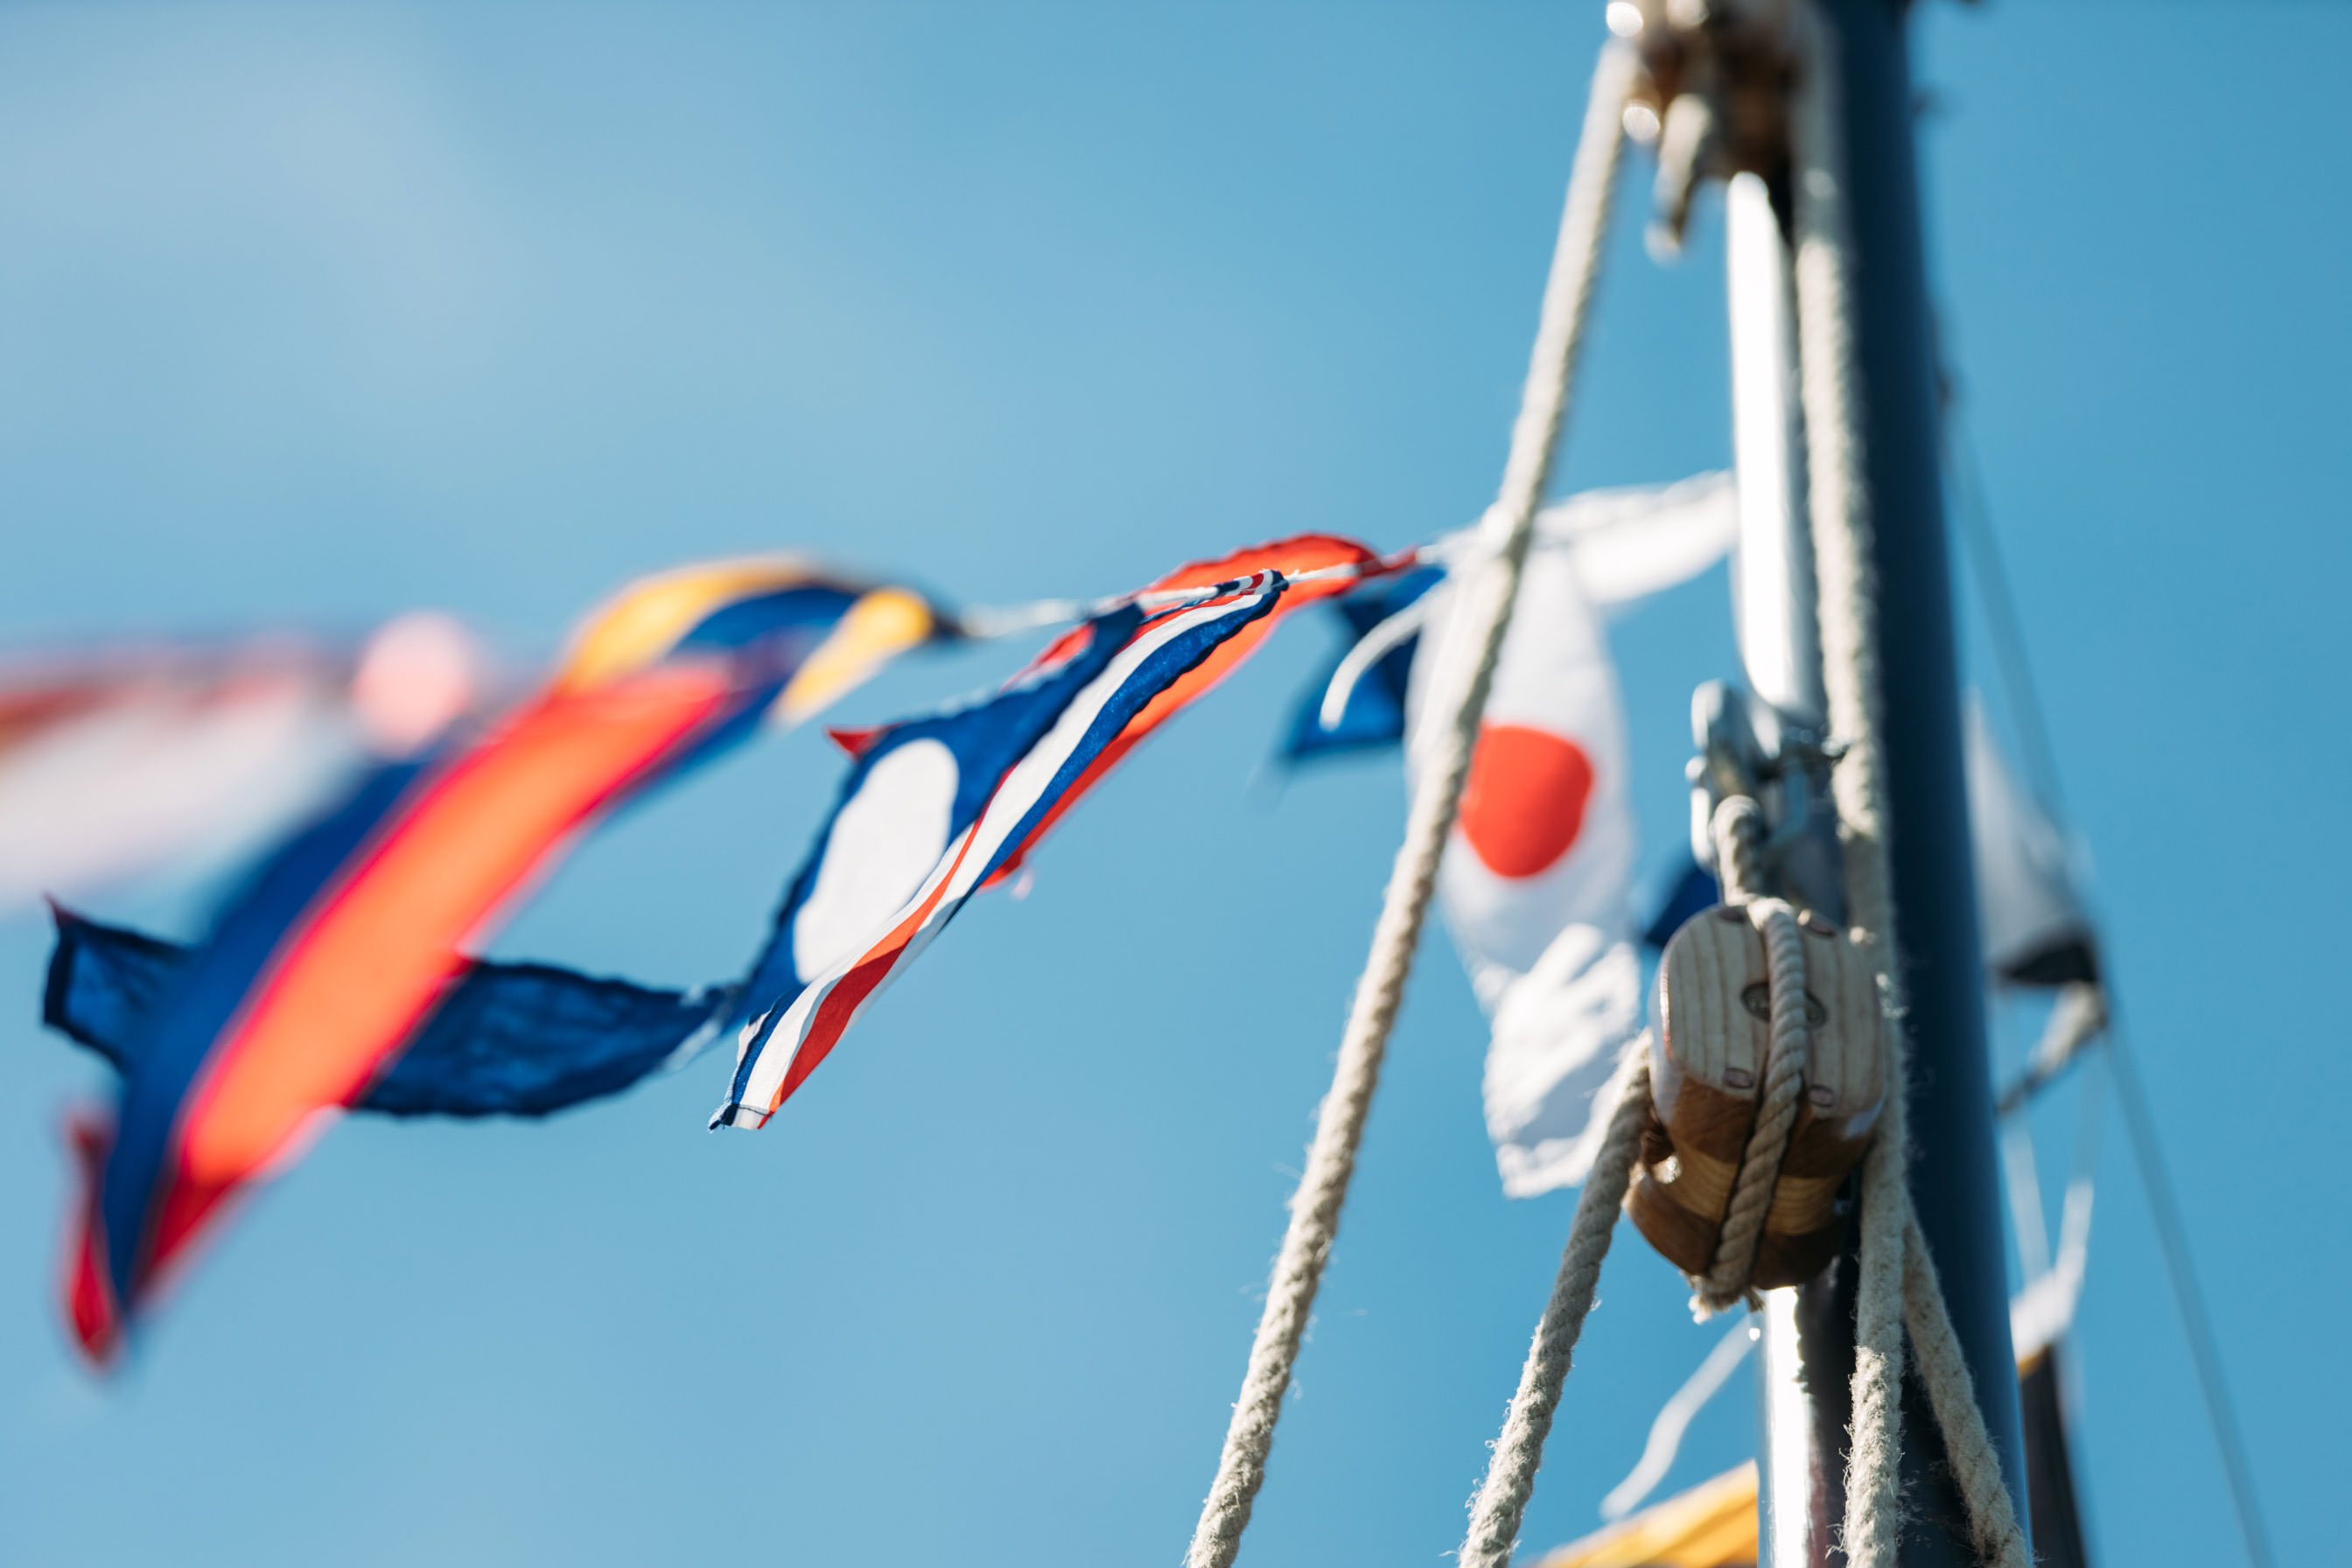 Flags onboard National Maritime Museum Cornwall's Heritage Boats